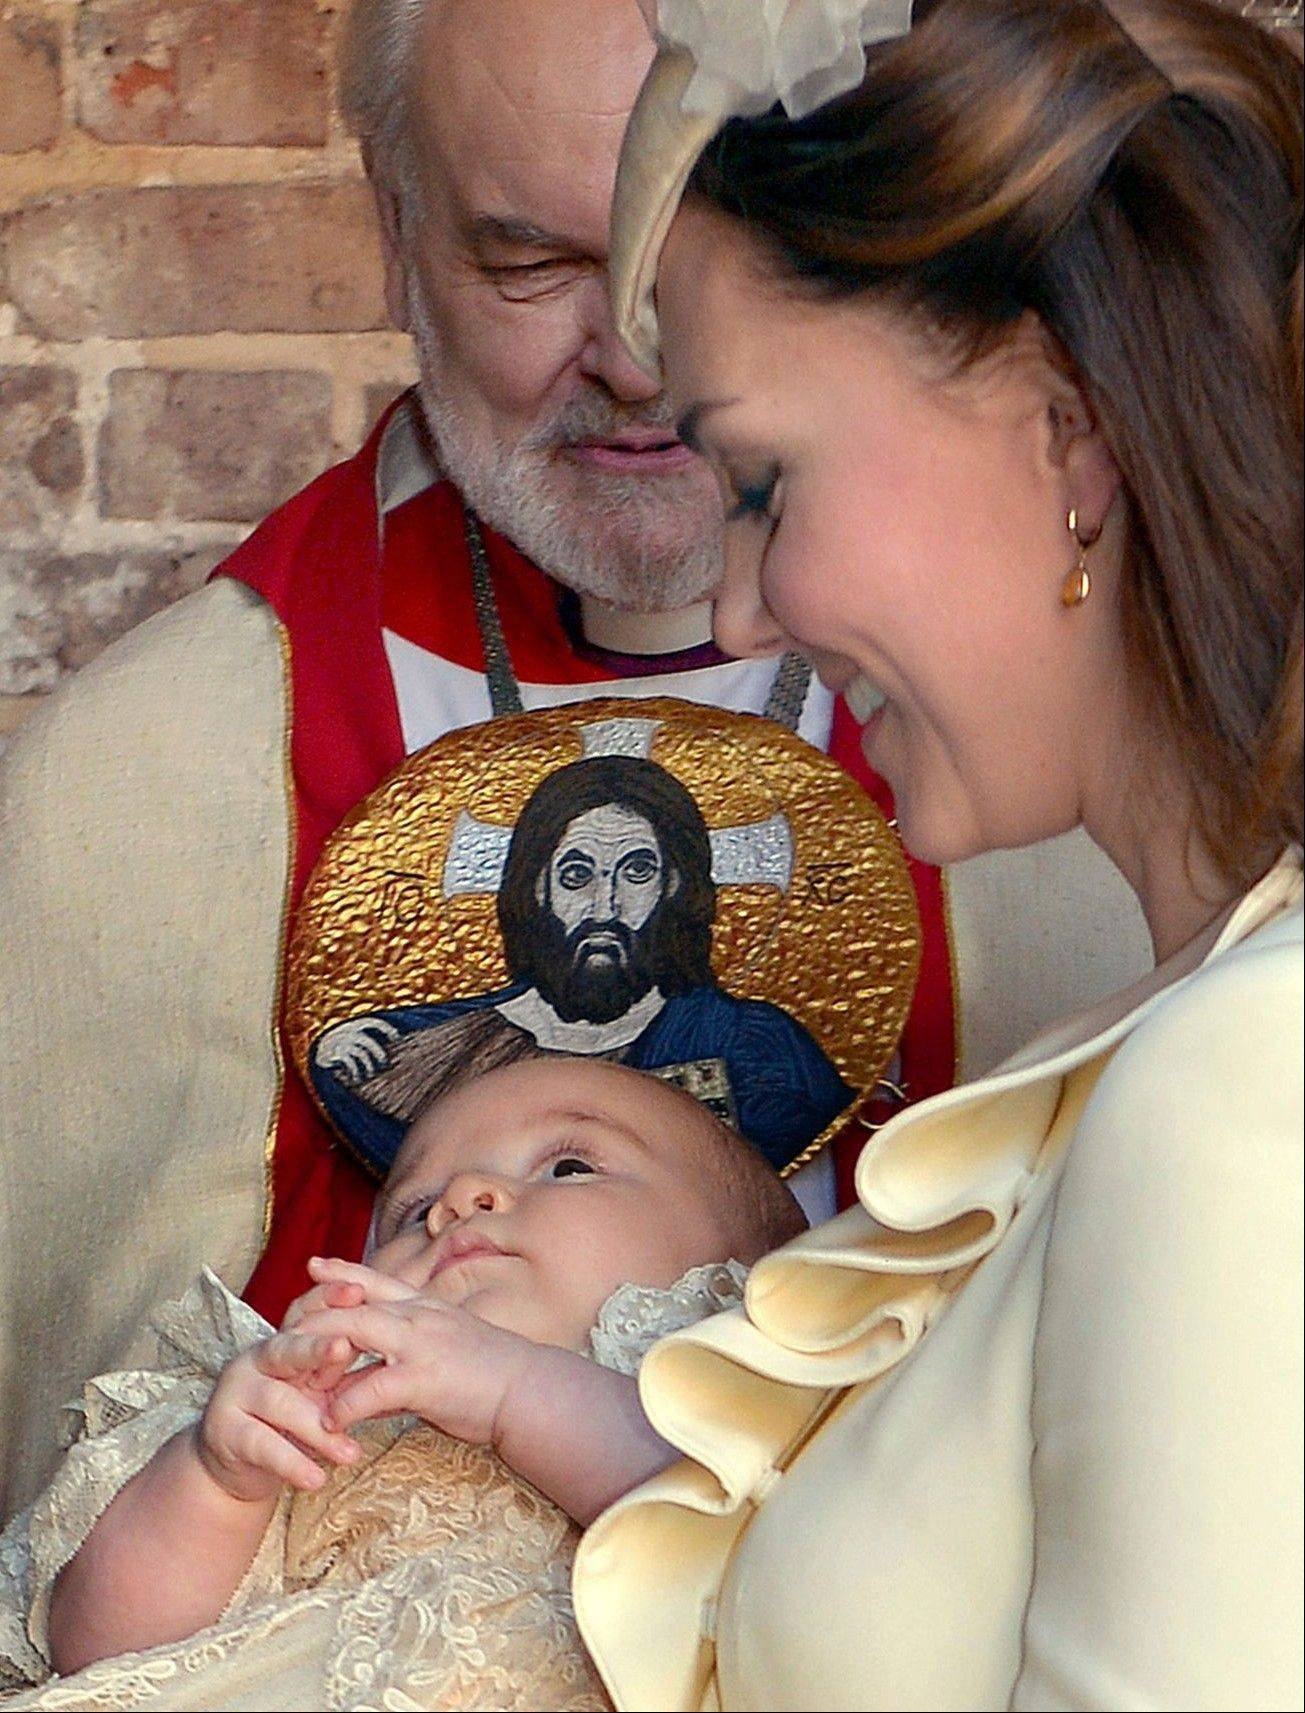 Kate Duchess of Cambridge carries her son Prince George after his christening Wednesday at the Chapel Royal in St James� Palace in London, with the Bishop of London Richard Chartres behind. The prince was christened Wednesday with water from the River Jordan at a rare four-generation gathering of the royal family in London.